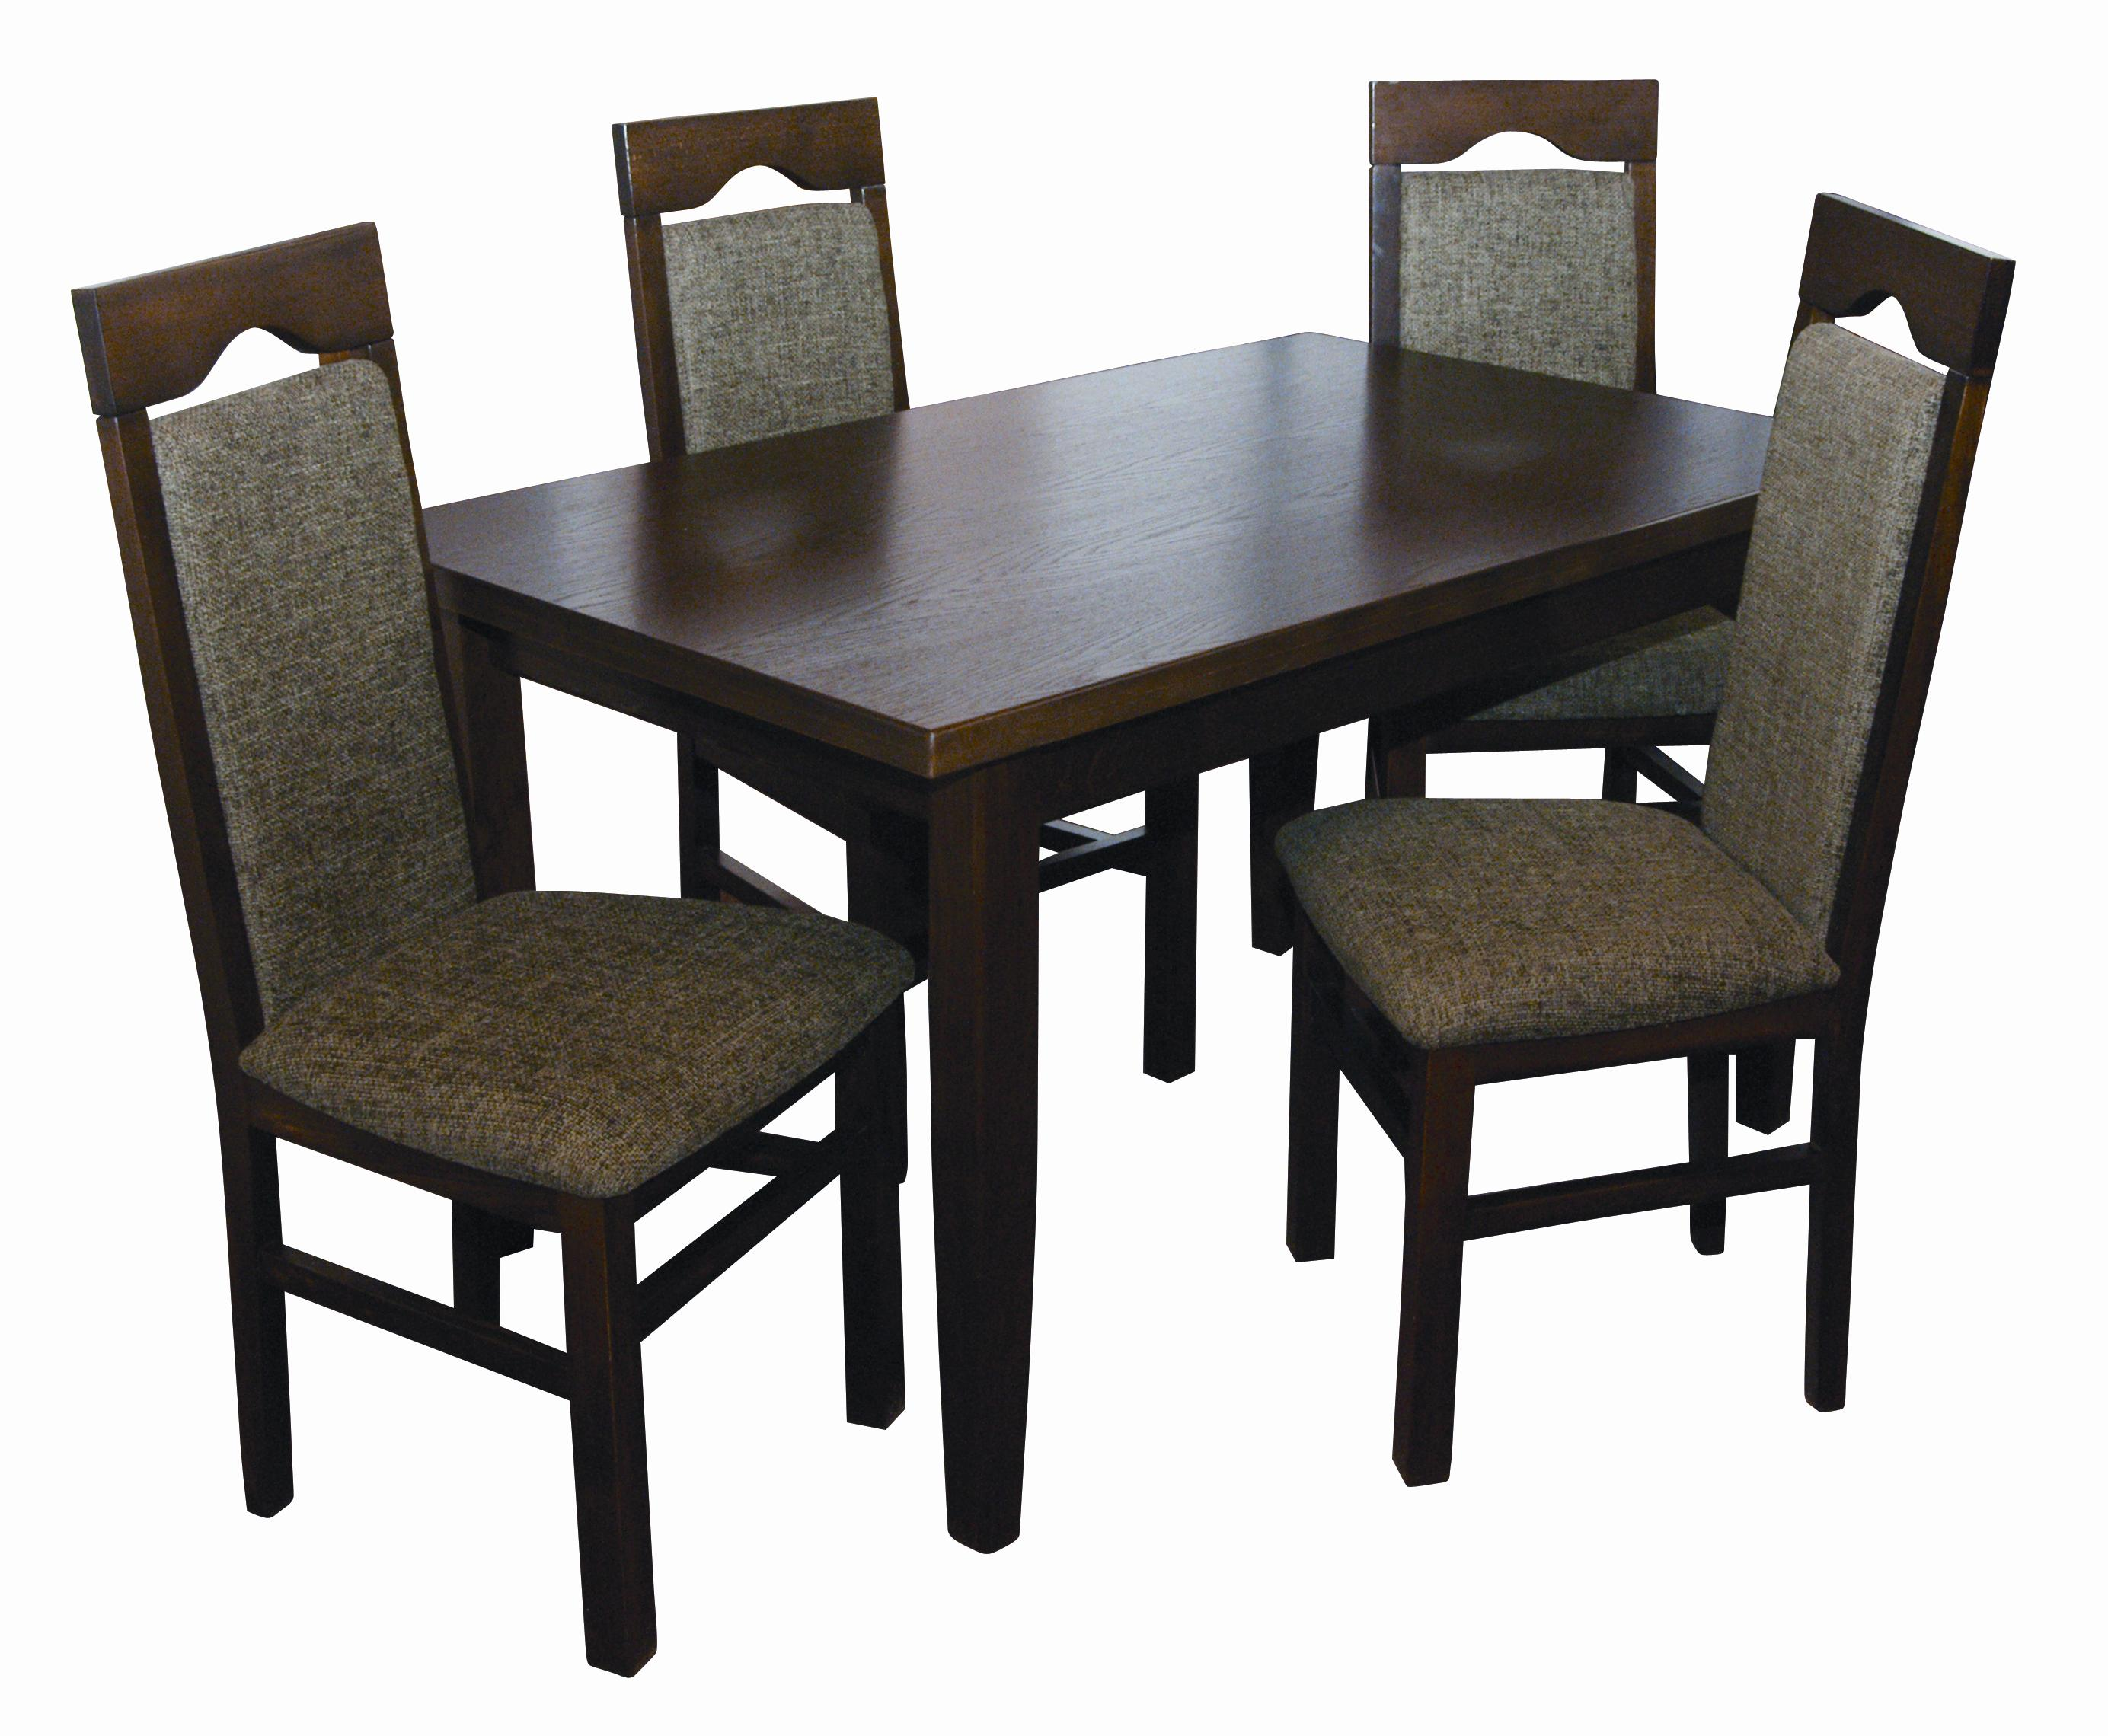 Restaurant Furniture Of Restaurant Chairs Design 0 0 2000 0 Pieces